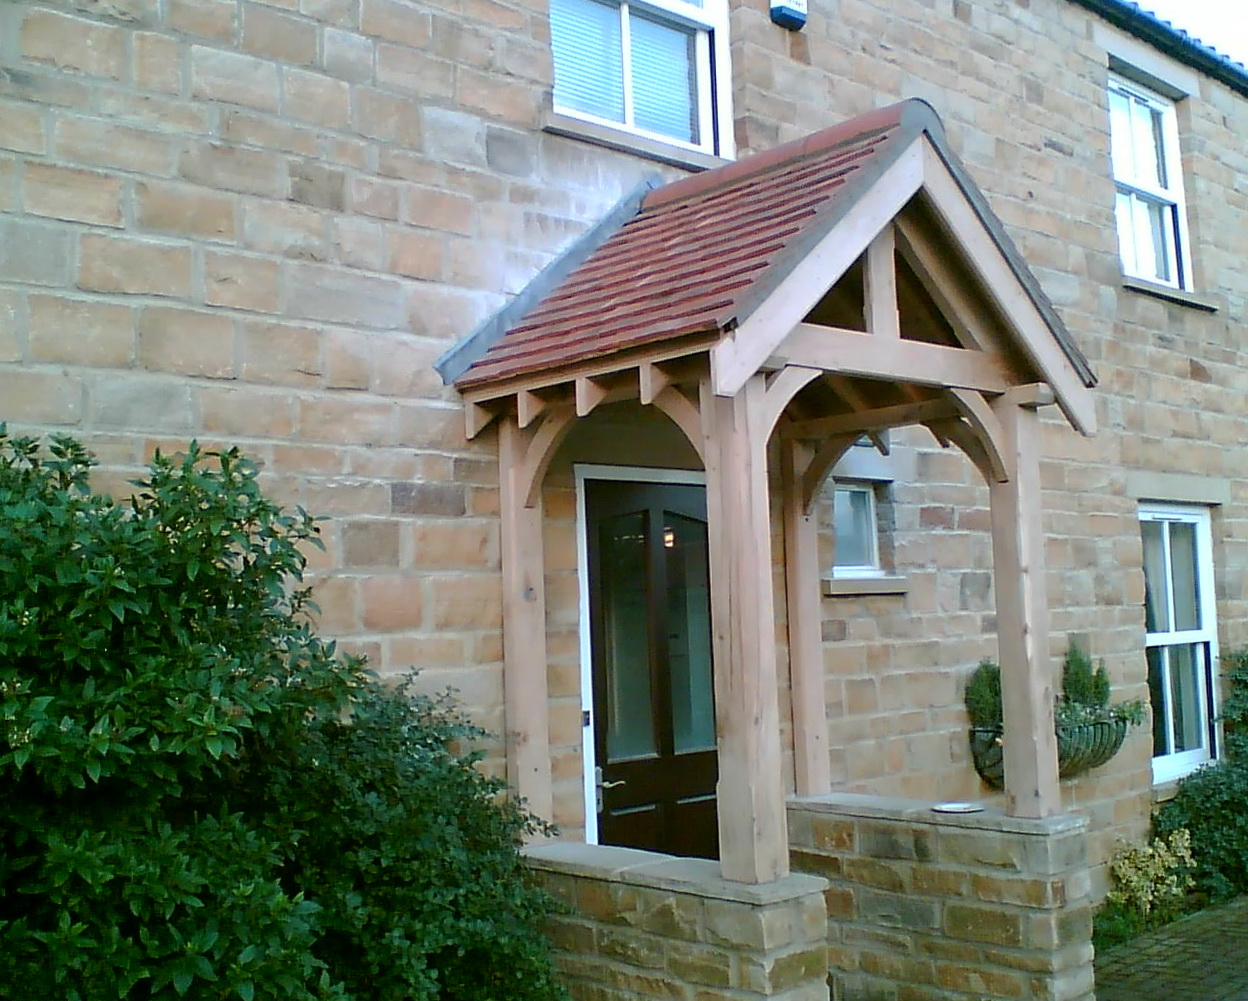 Porch designs for houses uk home design ideas Home ideas for small houses